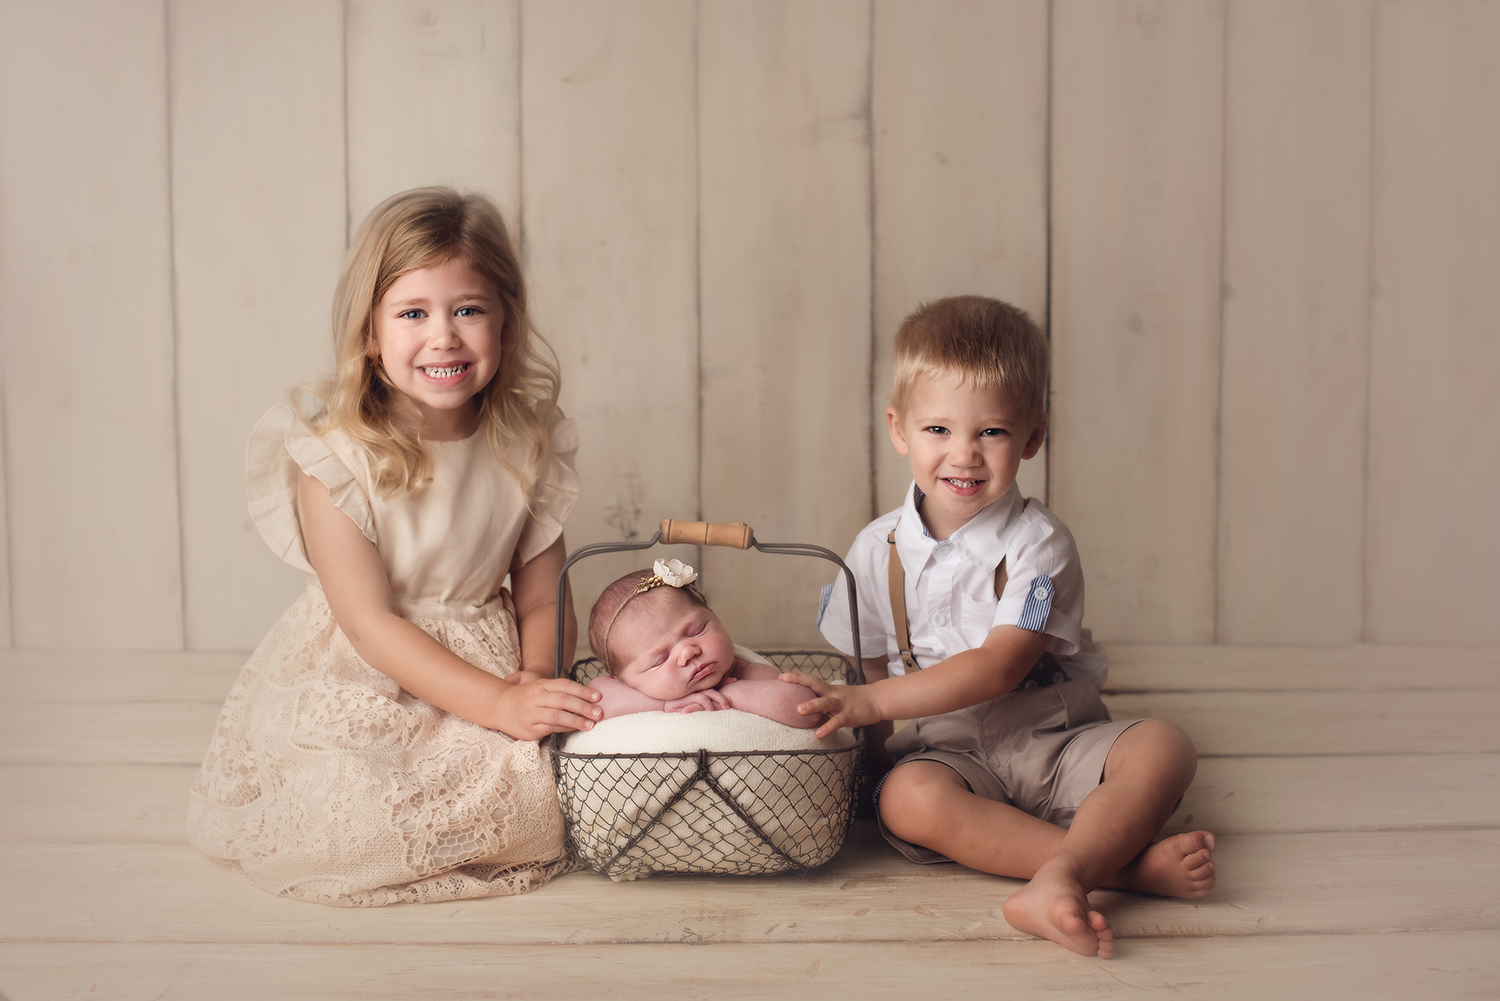 sibling-newborn-photos-barebabyphotography.jpg